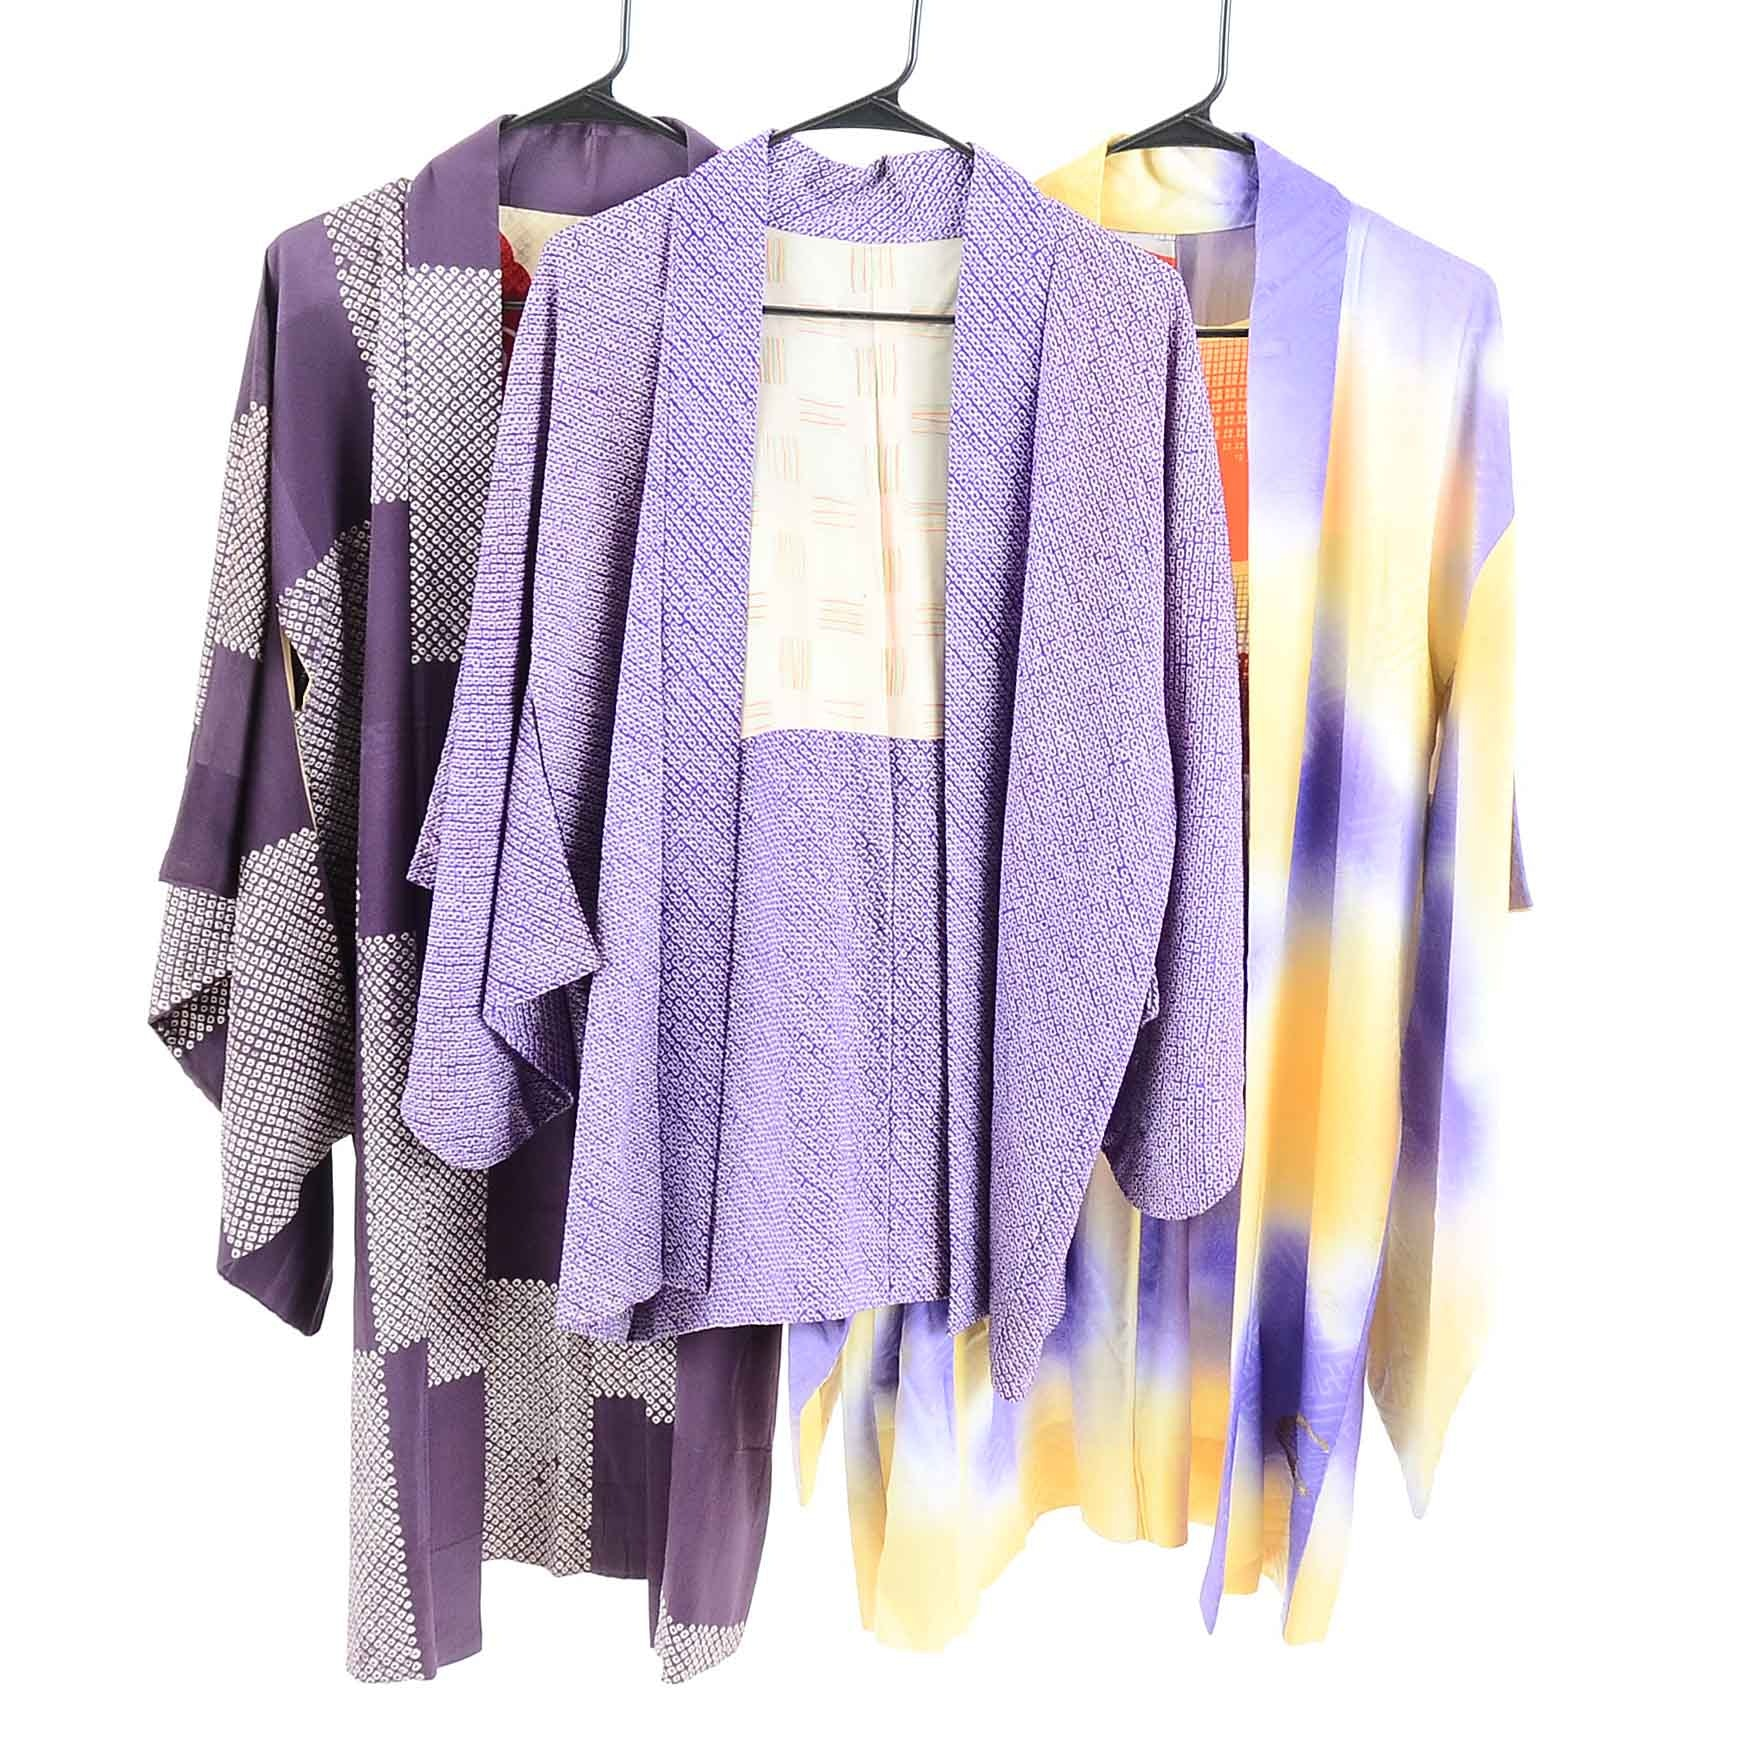 Vintage Japanese Silk Purple Haori Jackets